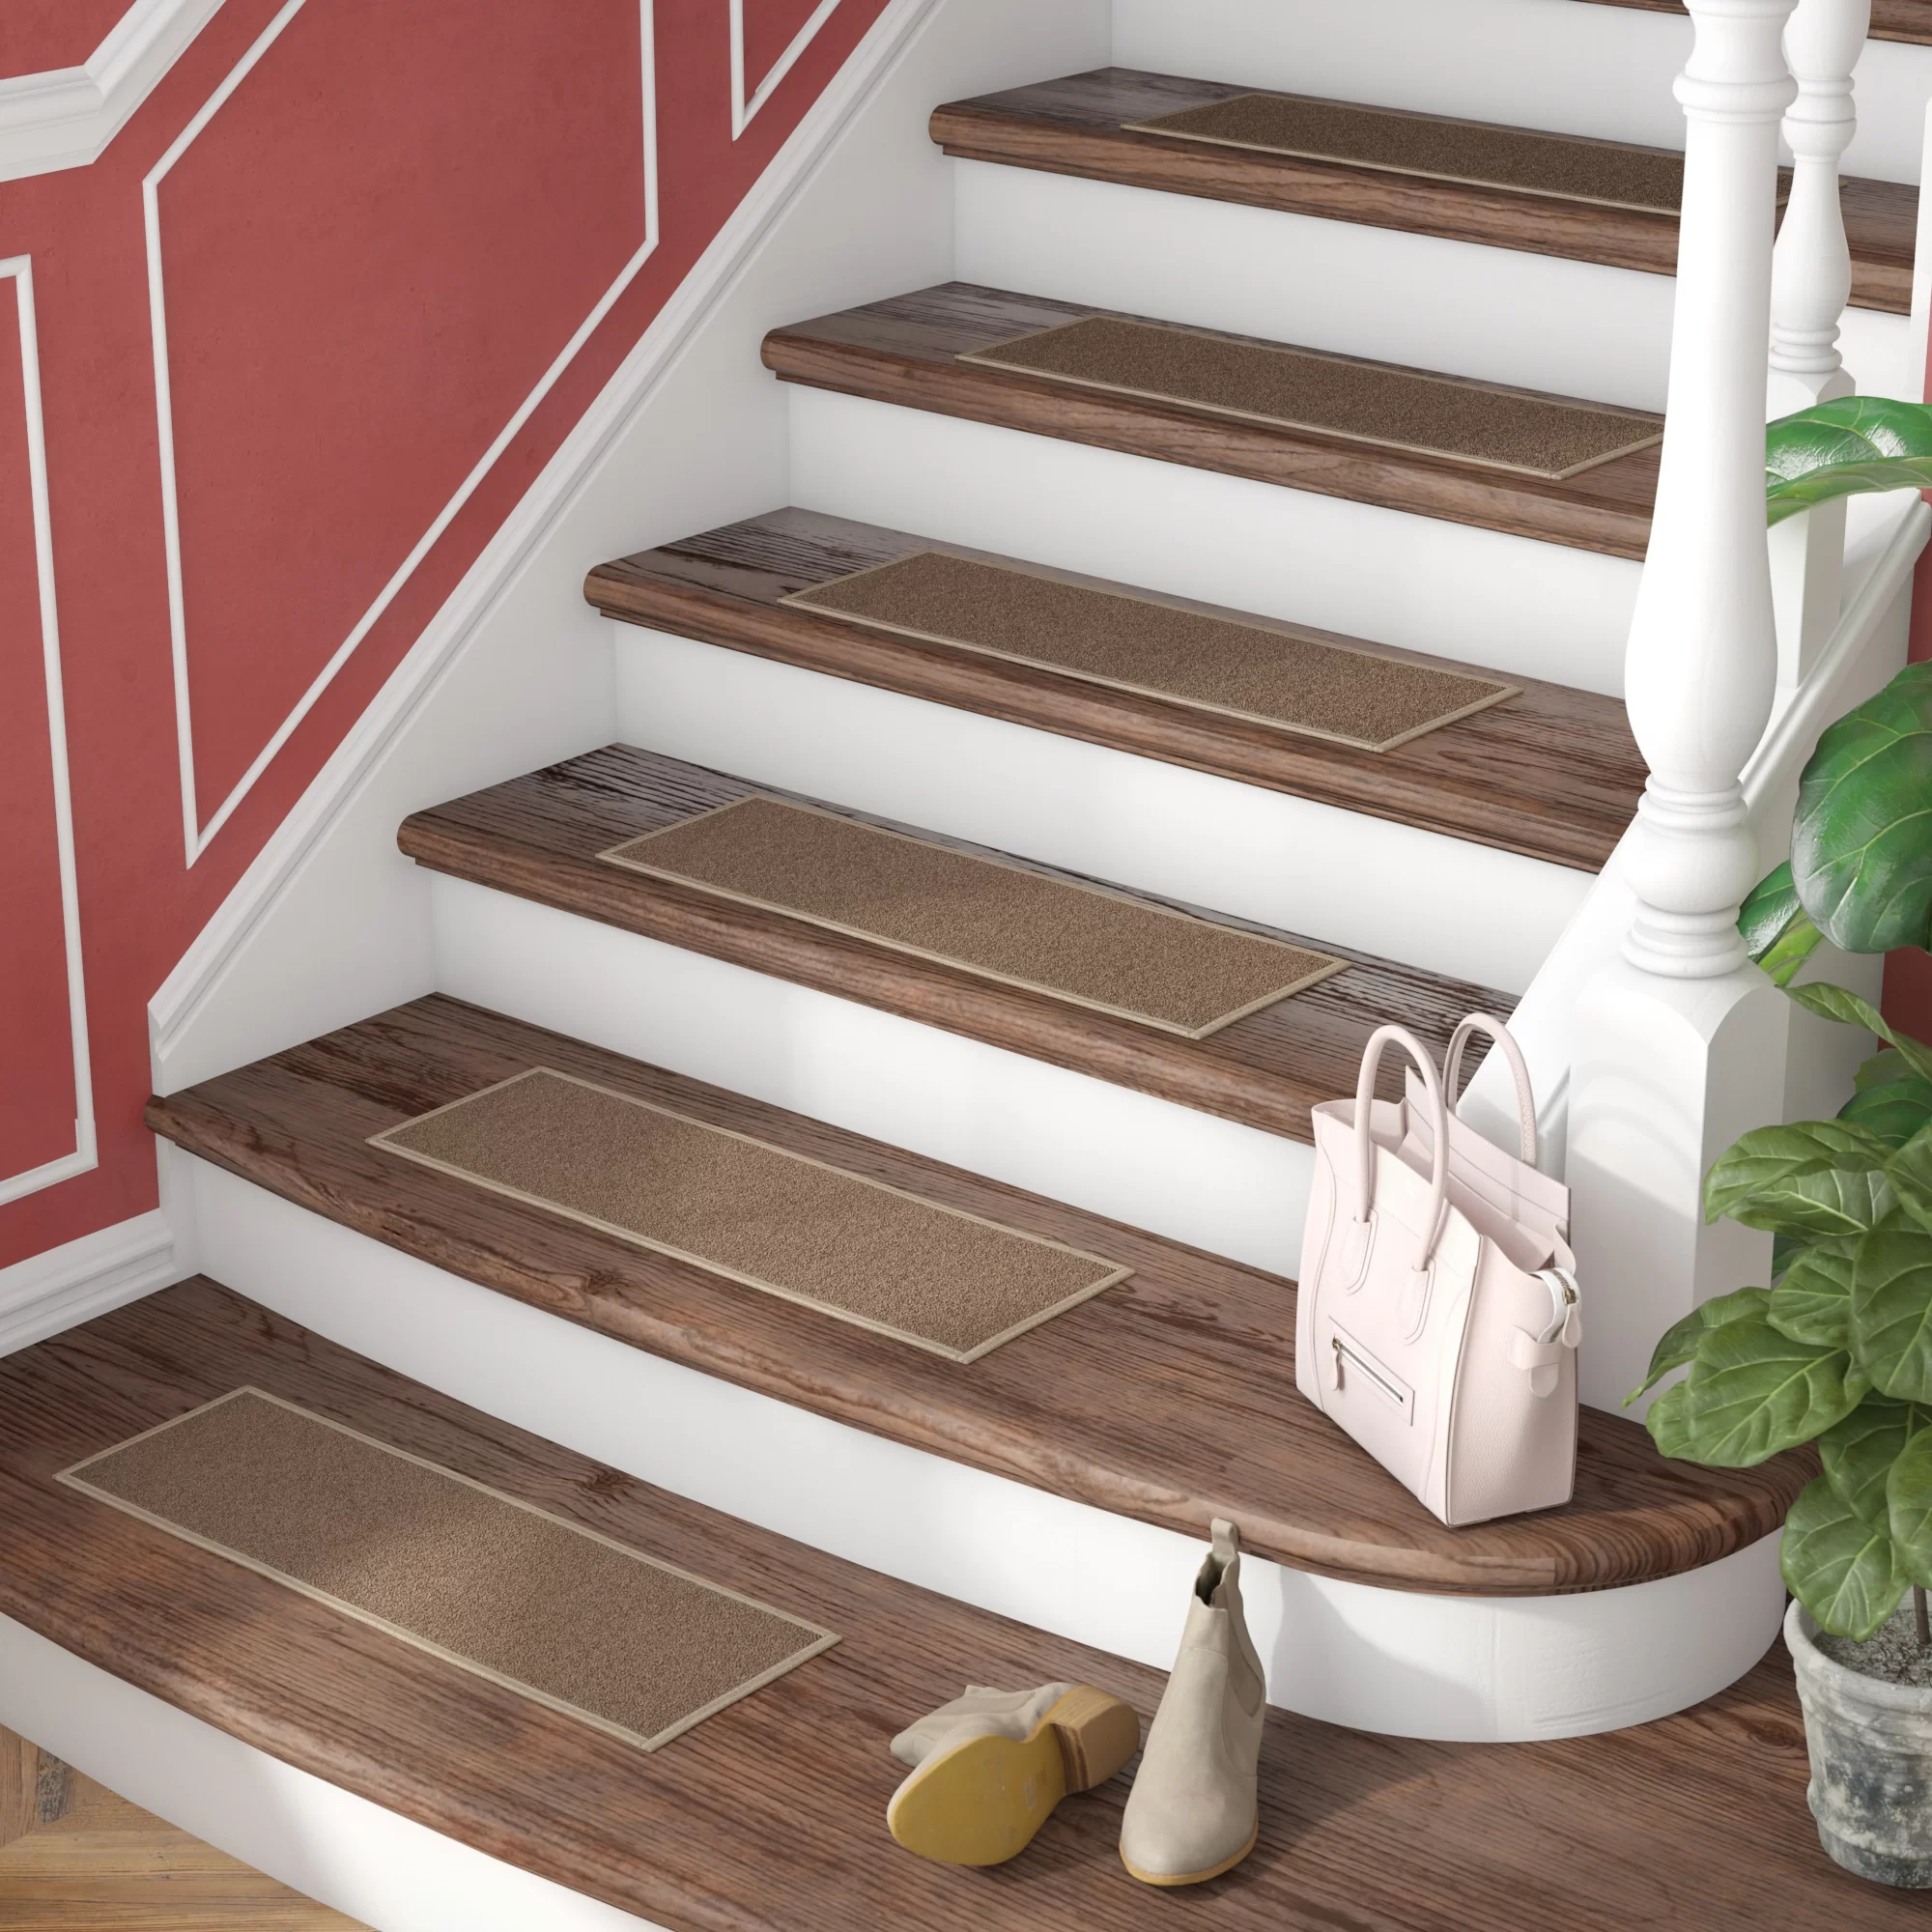 High Traction Vinyl Stair Treads W Tape An Alternative To Carpet   Vinyl And Carpet Stairs   Thin   Indoor   Light   Low Pile   Laminate